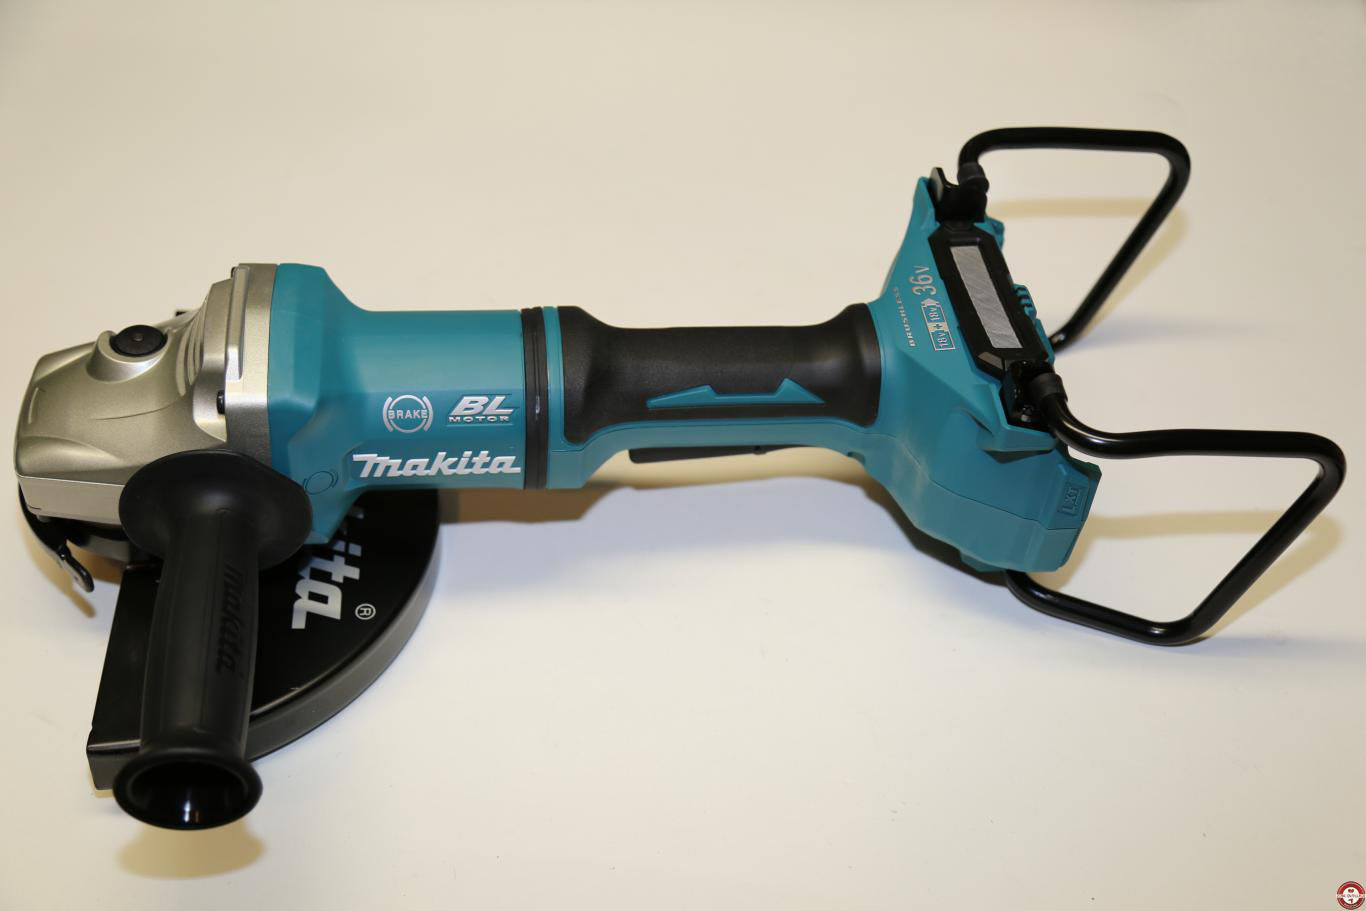 Test de la meuleuse DGA900 Makita 230 mm